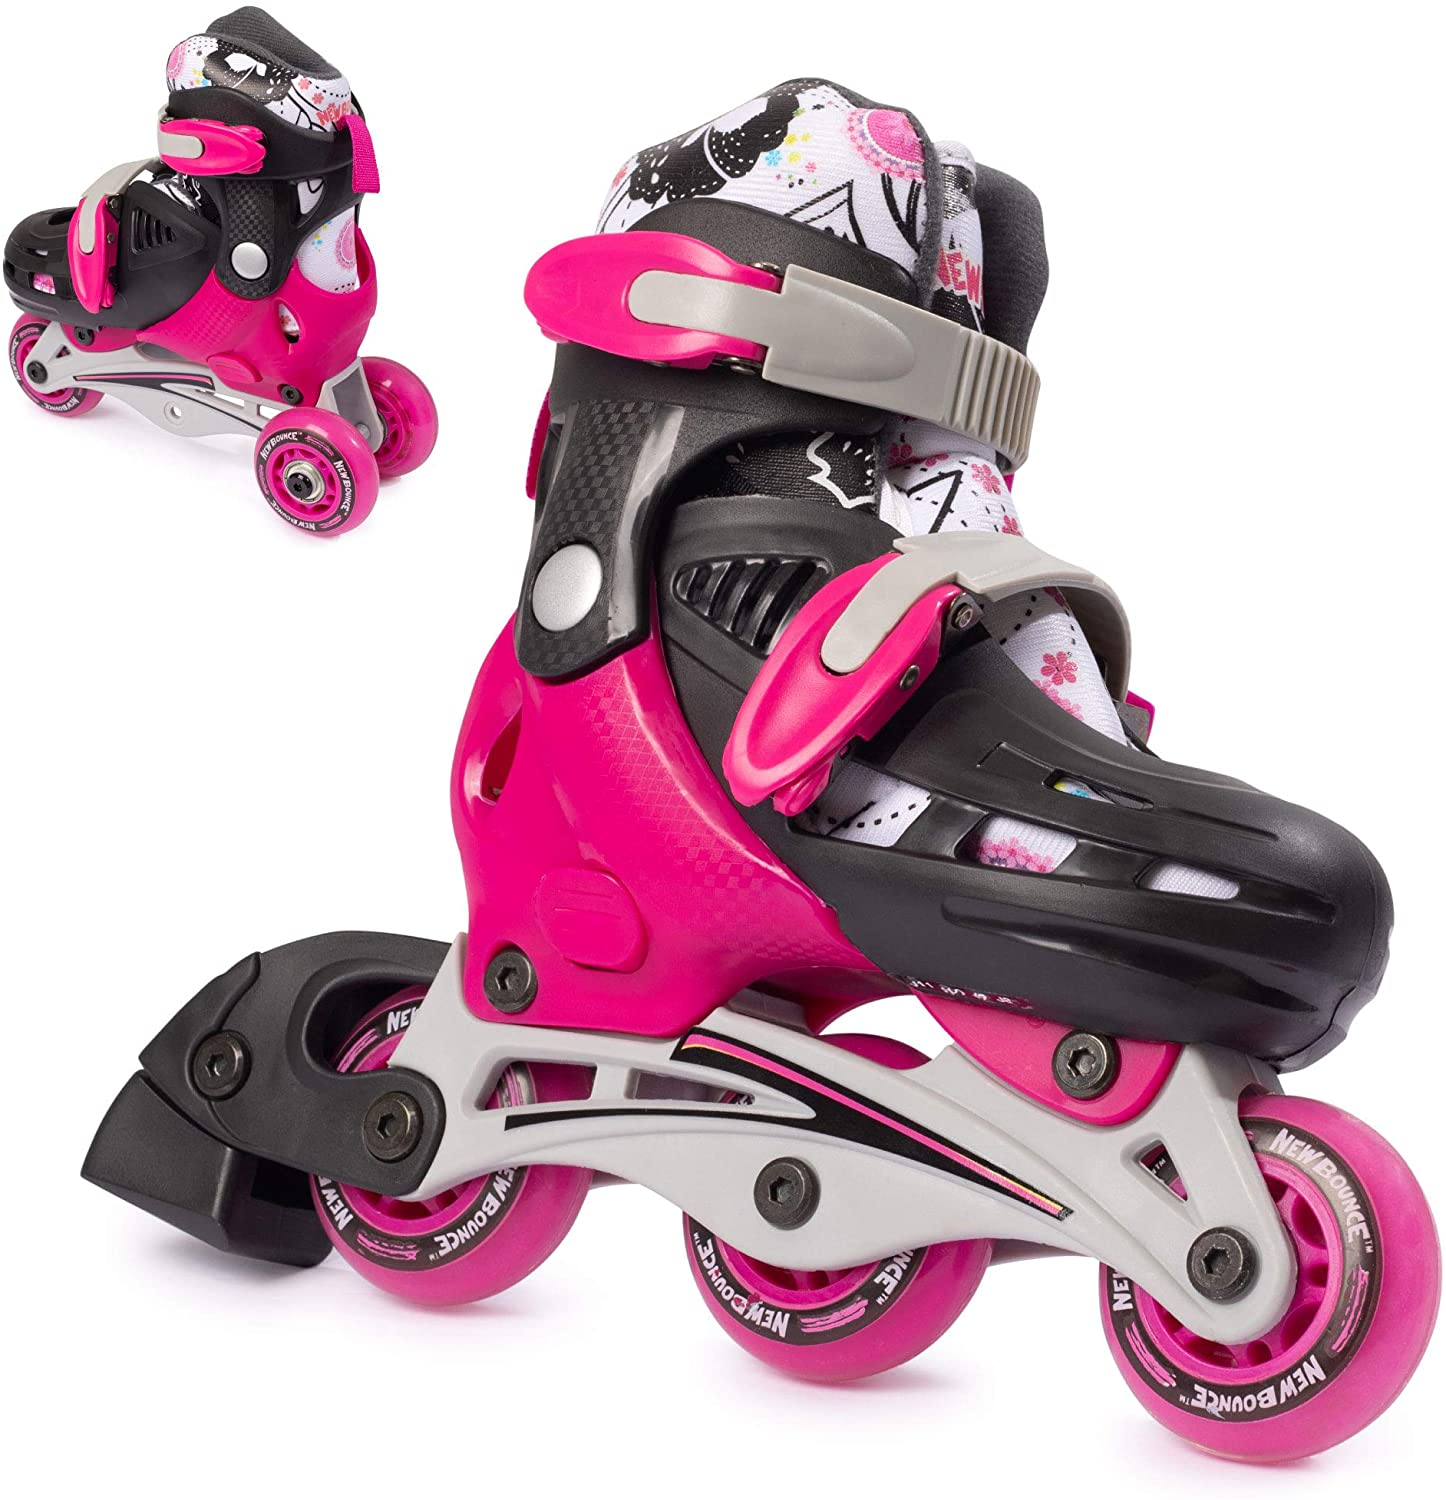 New Bounce Roller Skates for Little Kids - Shoe Size EU 24-28, US Kids 8-11, 2-in-1 Roller Skates for Girls, Converts from Tri-Wheel to Inline Skates - Outdoor Rollerskates for Beginners | Pink